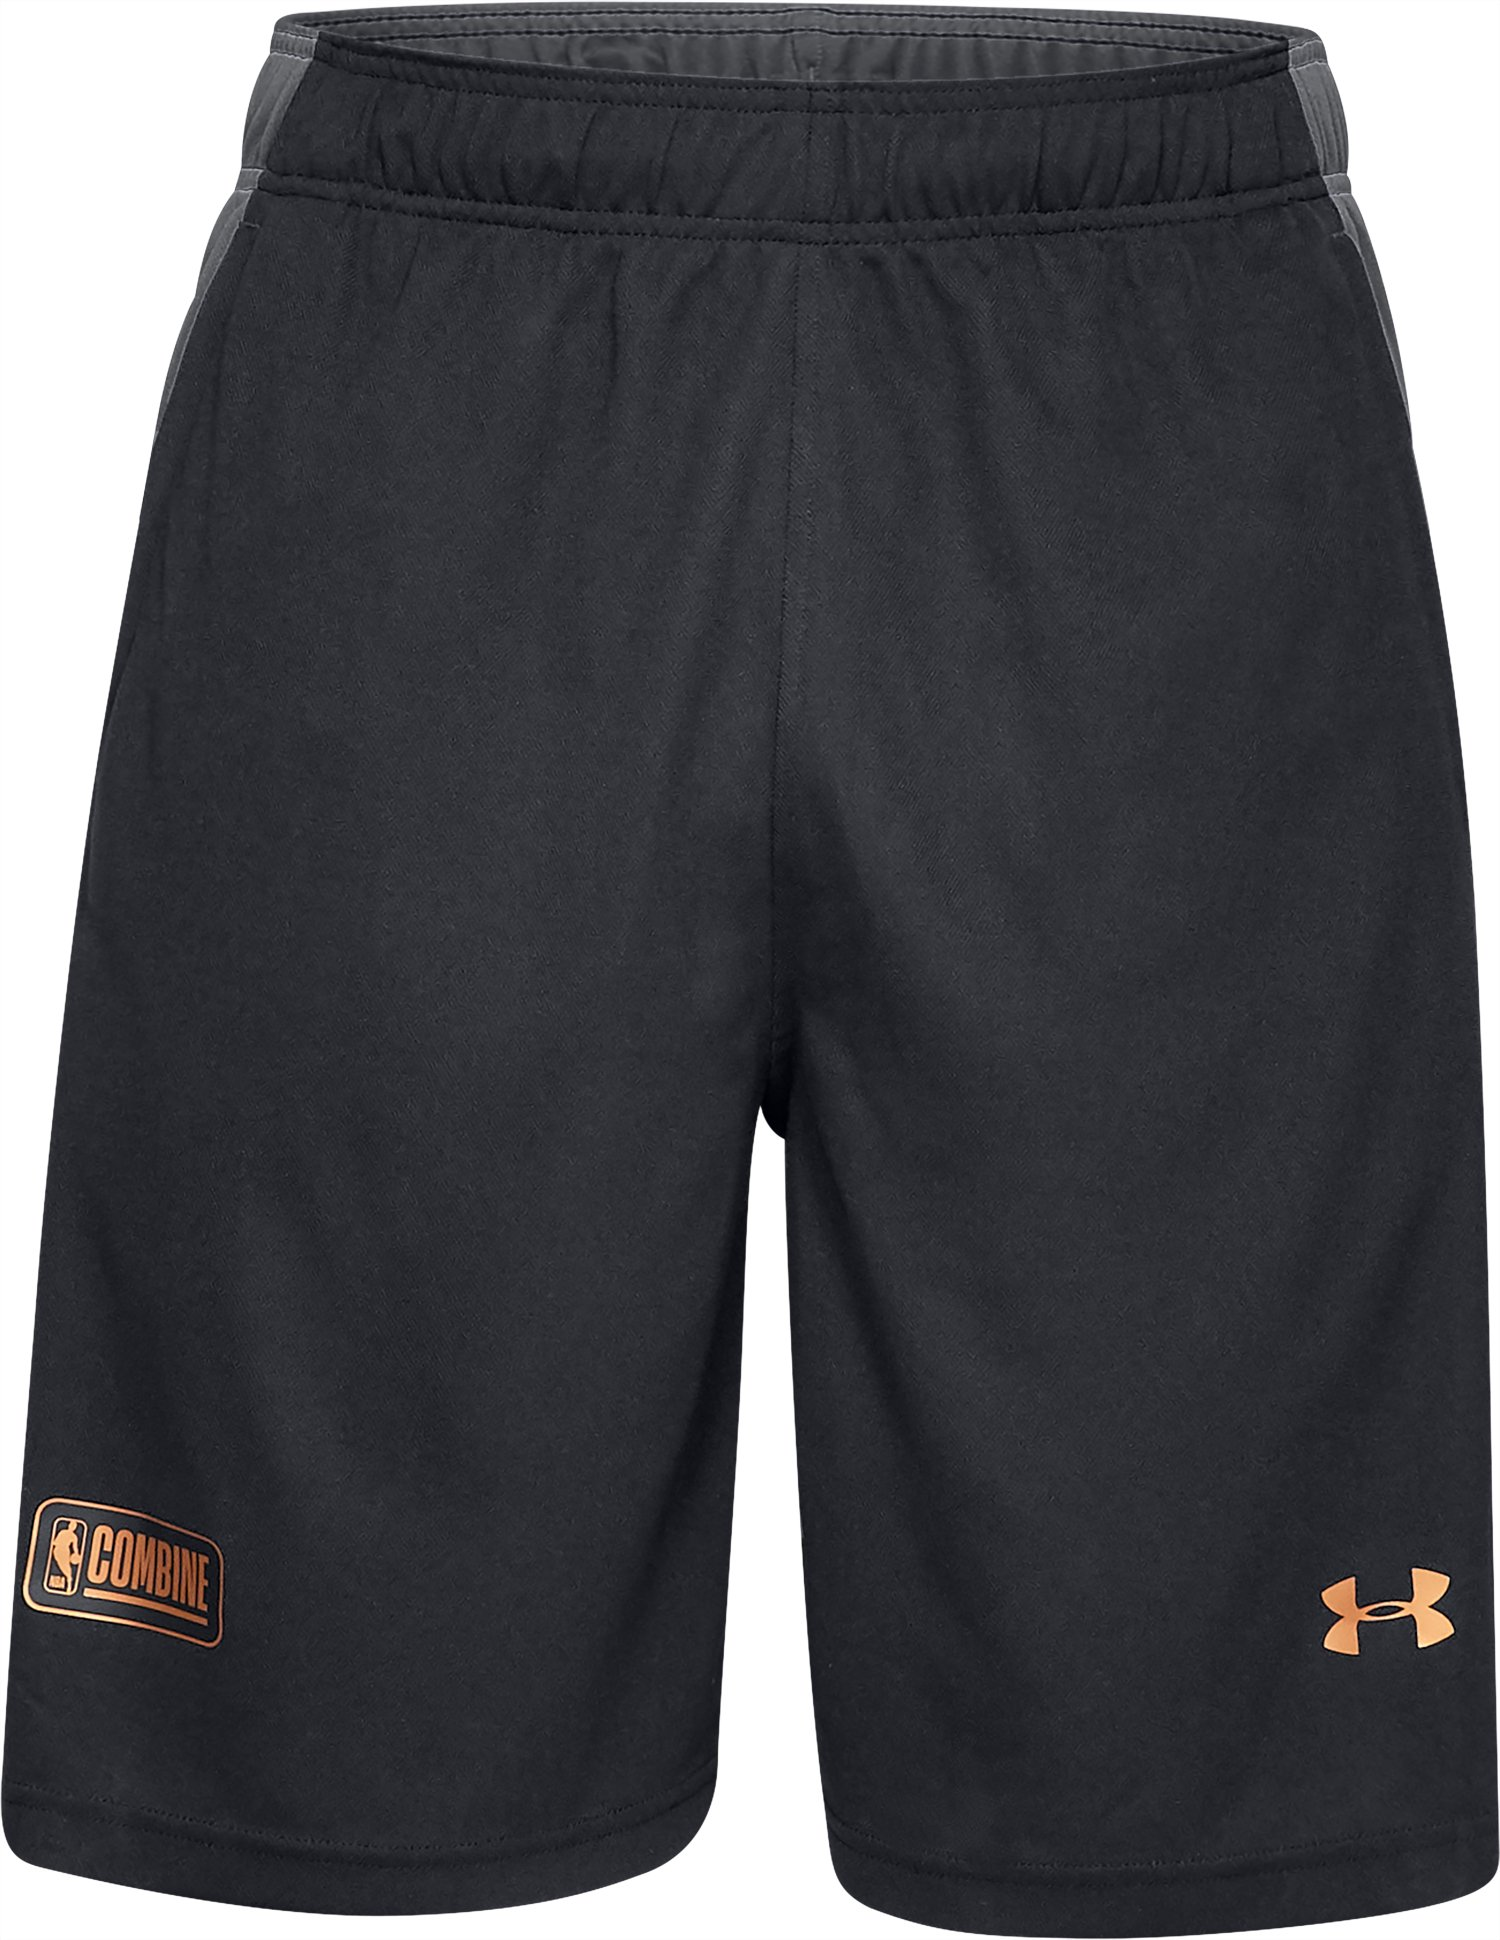 Men's NBA Combine Authentic UA Select 31st Shorts, Black ,